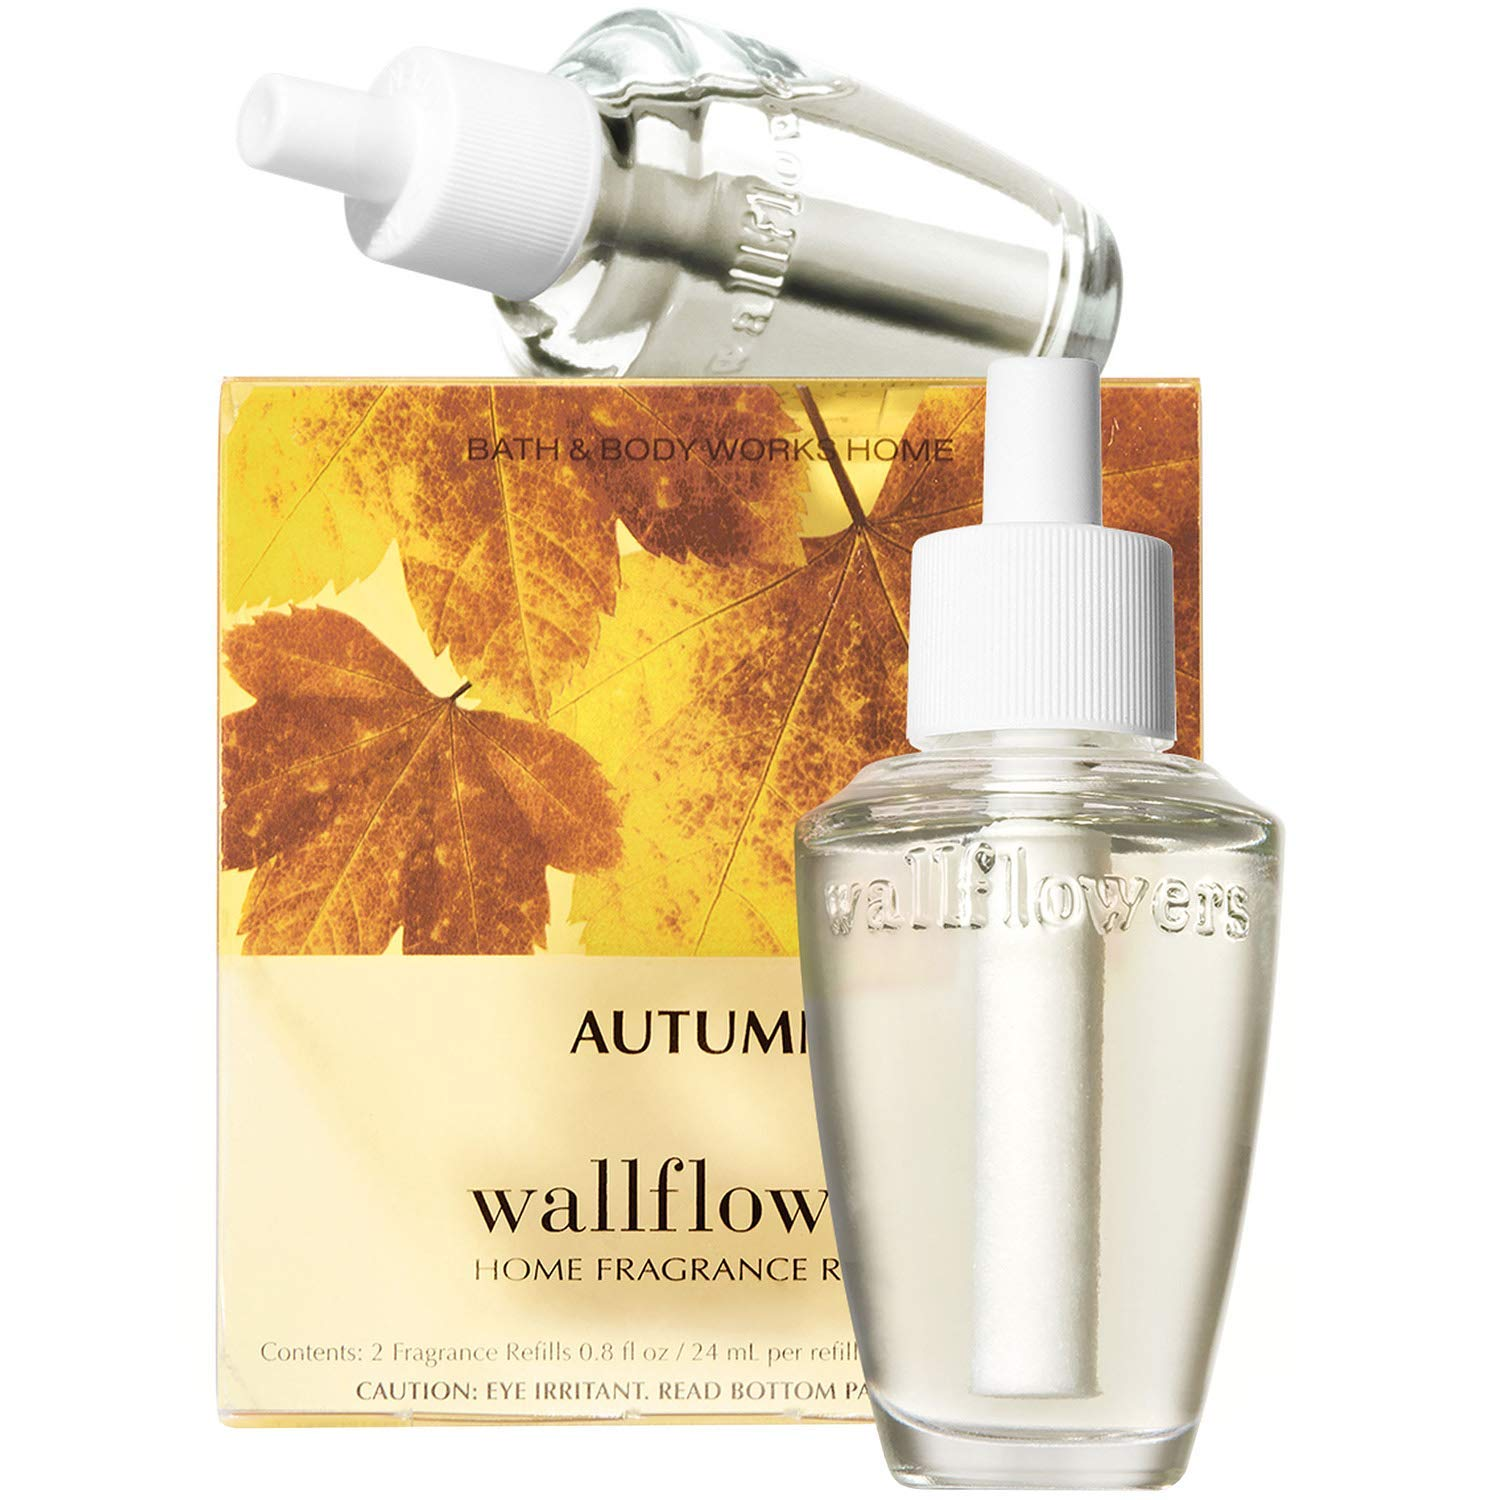 Bath & Body Works Autumn Wallflowers Home Fragrance Refills, 2-Pack